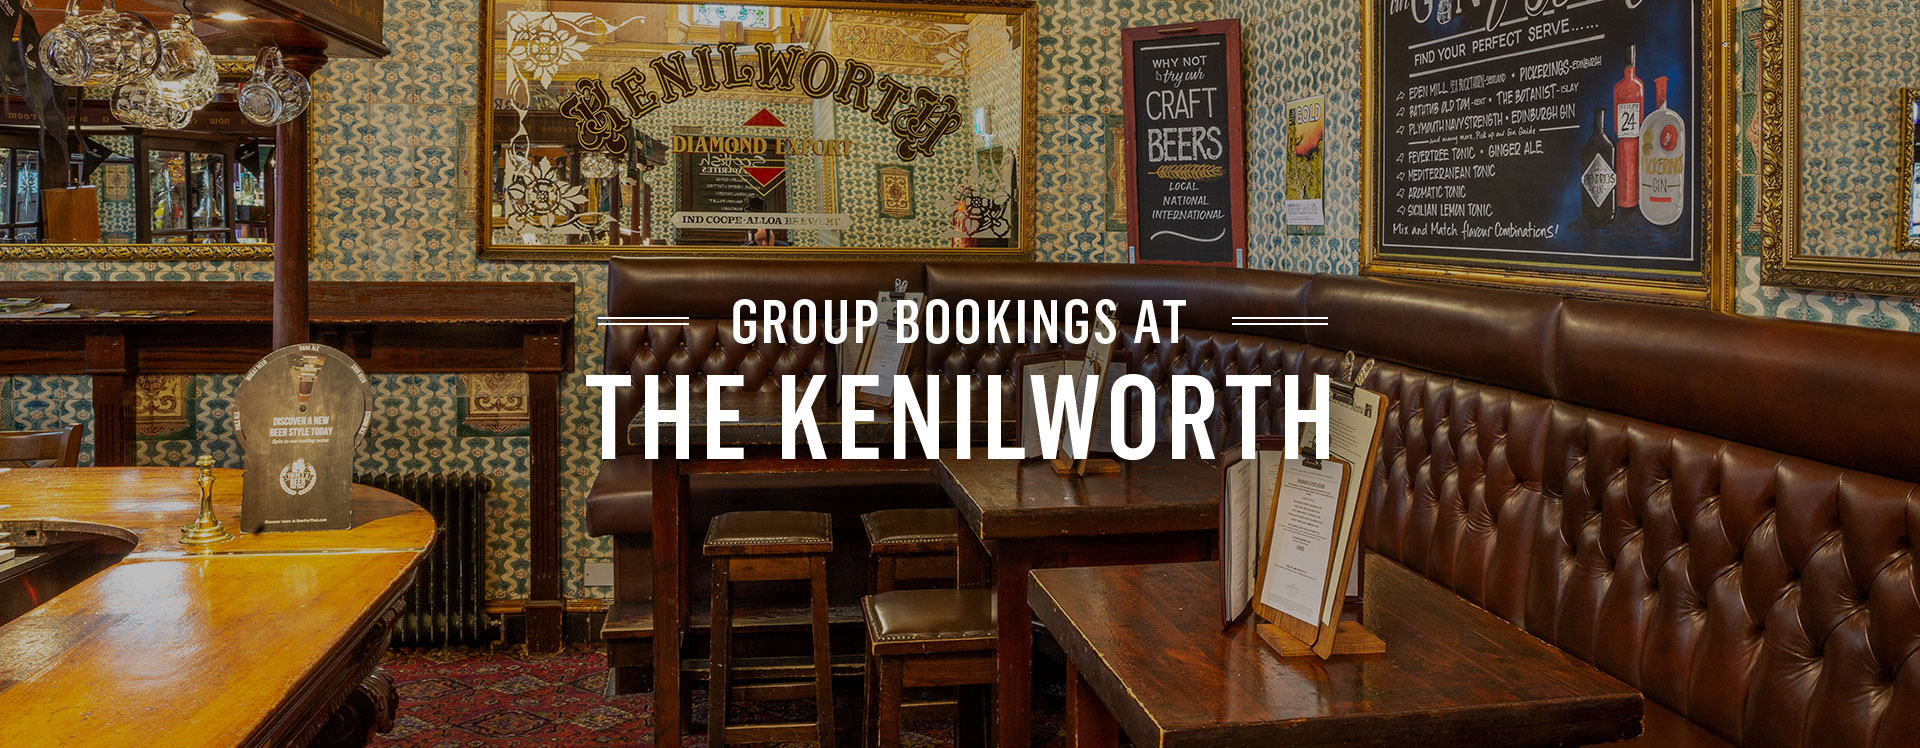 Group Bookings at The Kenilworth